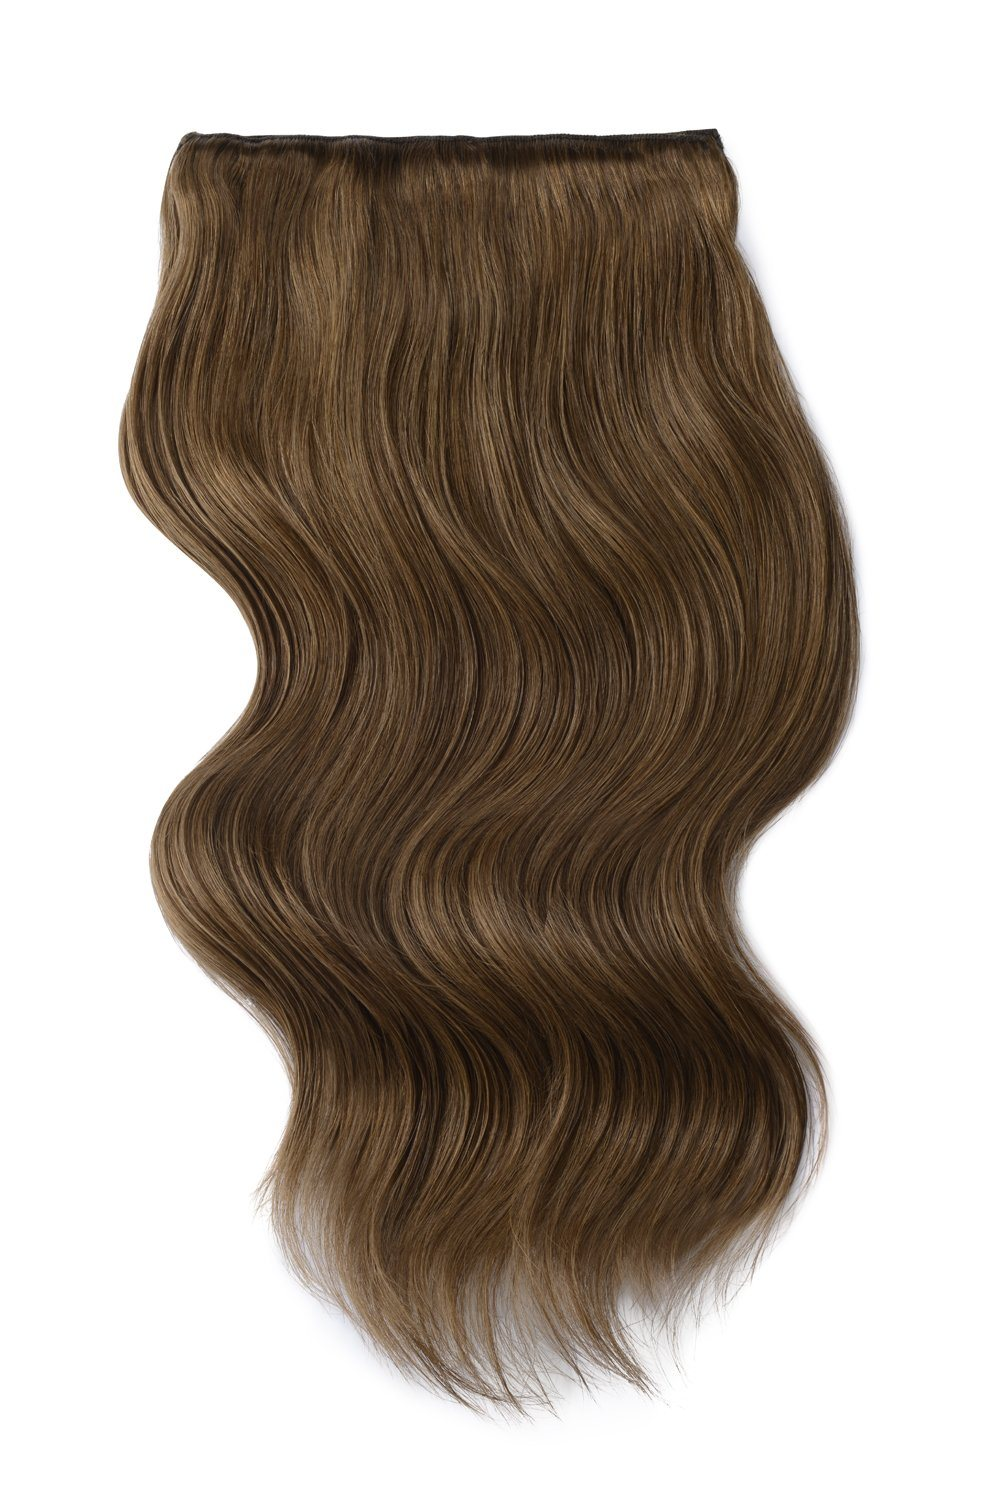 Brown Clip In Hair Extensions Double Weft - 180-200G